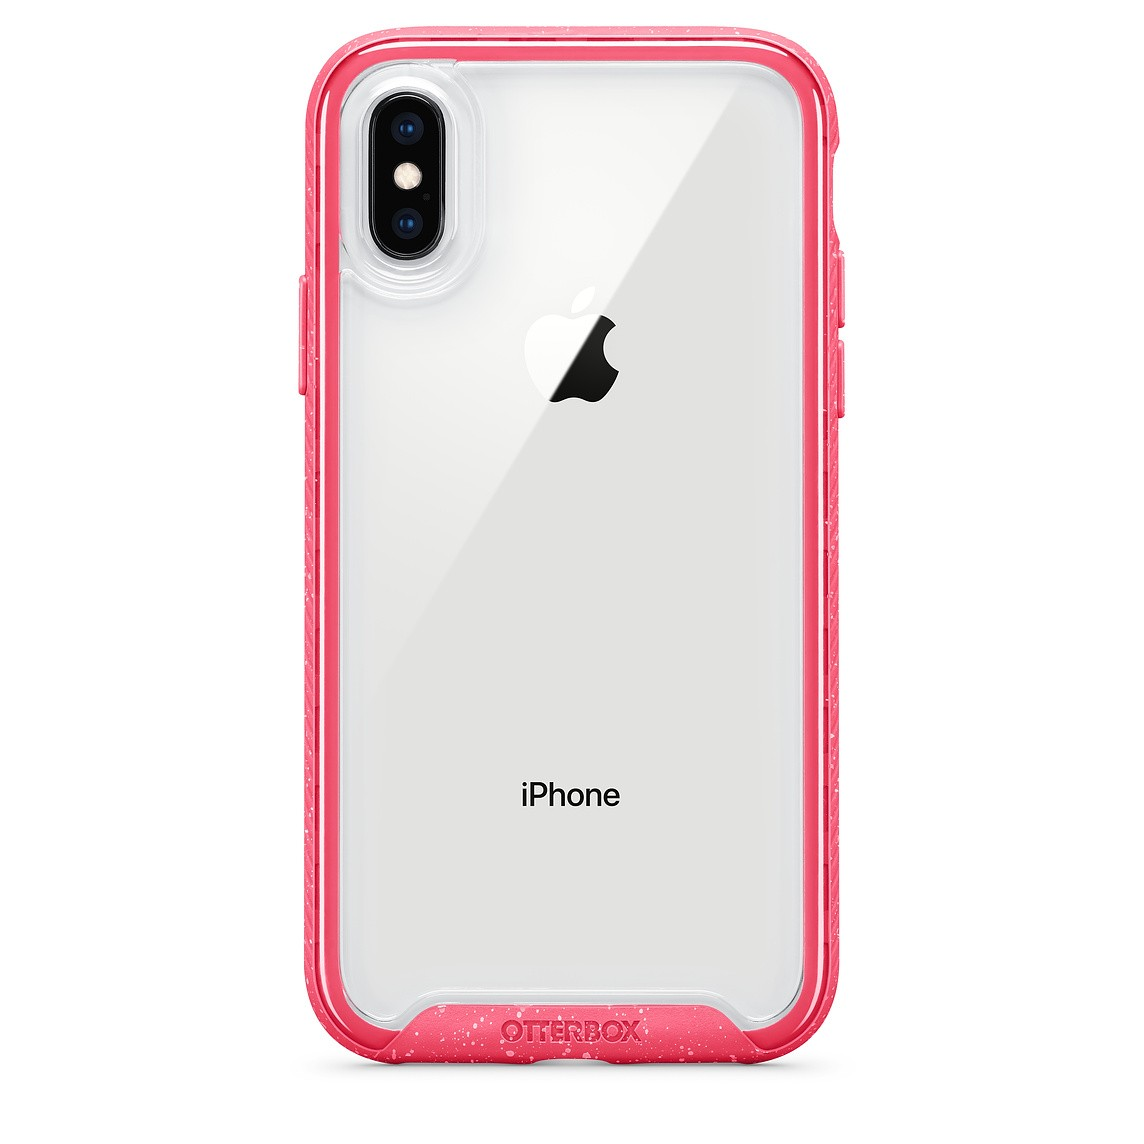 Capa OtterBox Mod Traction Para iPhone X/XS Rosa